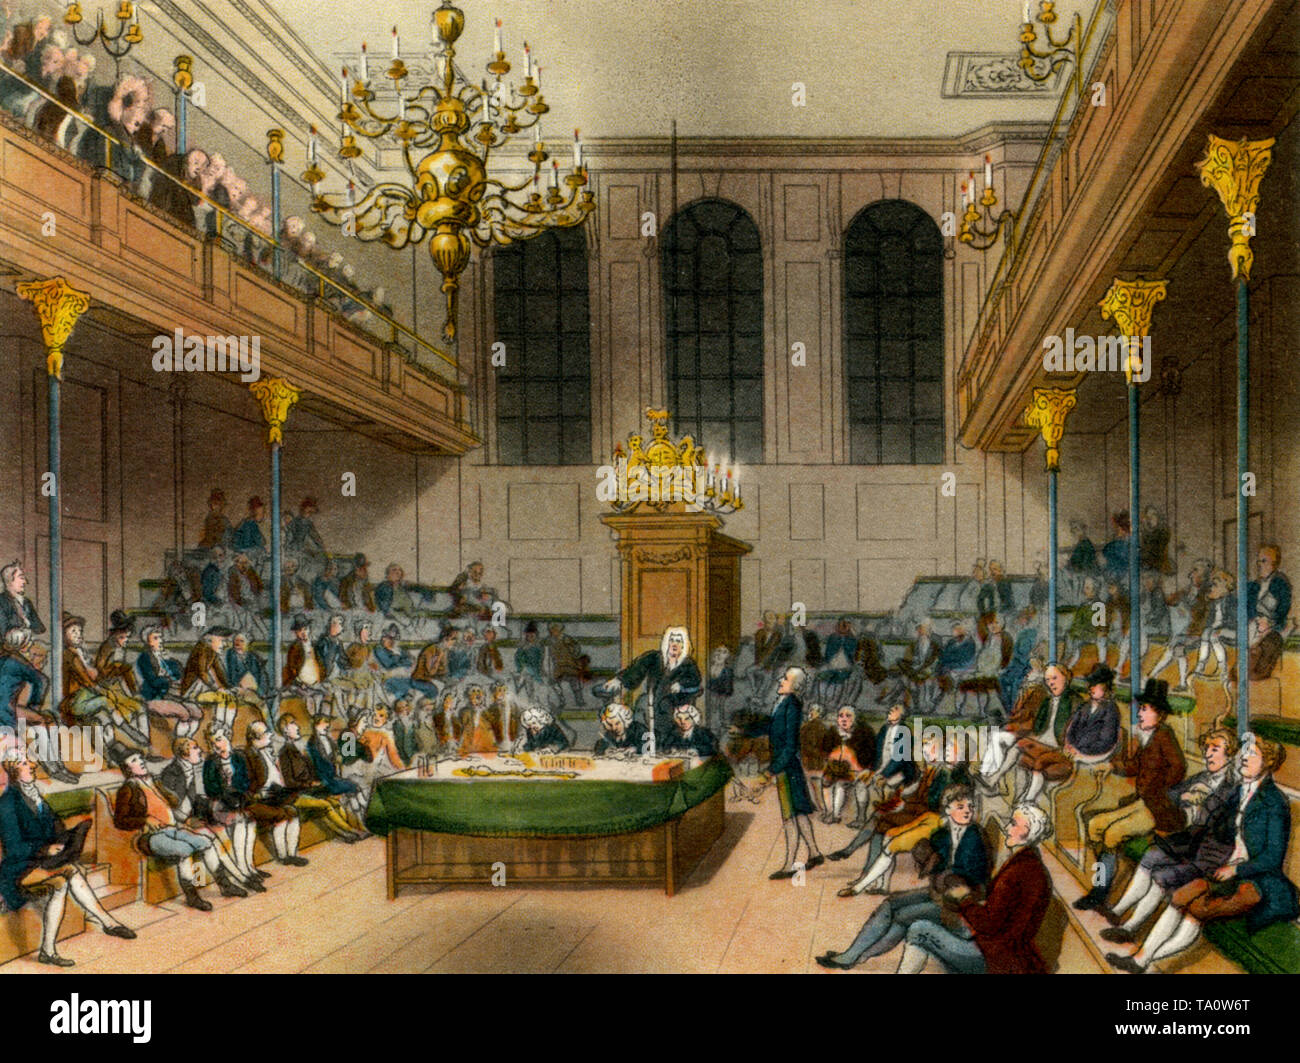 House of Commons, c1808-1810. A print from 'The Microcosm of London', by William Henry Pyne (1770-1843). Artists: Thomas Rowlandson (1756 – 1827) and Auguste Charles Pugin (1762–1832). The medieval Commons Chamber seen here prior to its destruction by fire in 1834. The new Palace of Westminster was partly designed by Auguste Charles Pugin's son, Augustus Welby Pugin (1812-1852). - Stock Image